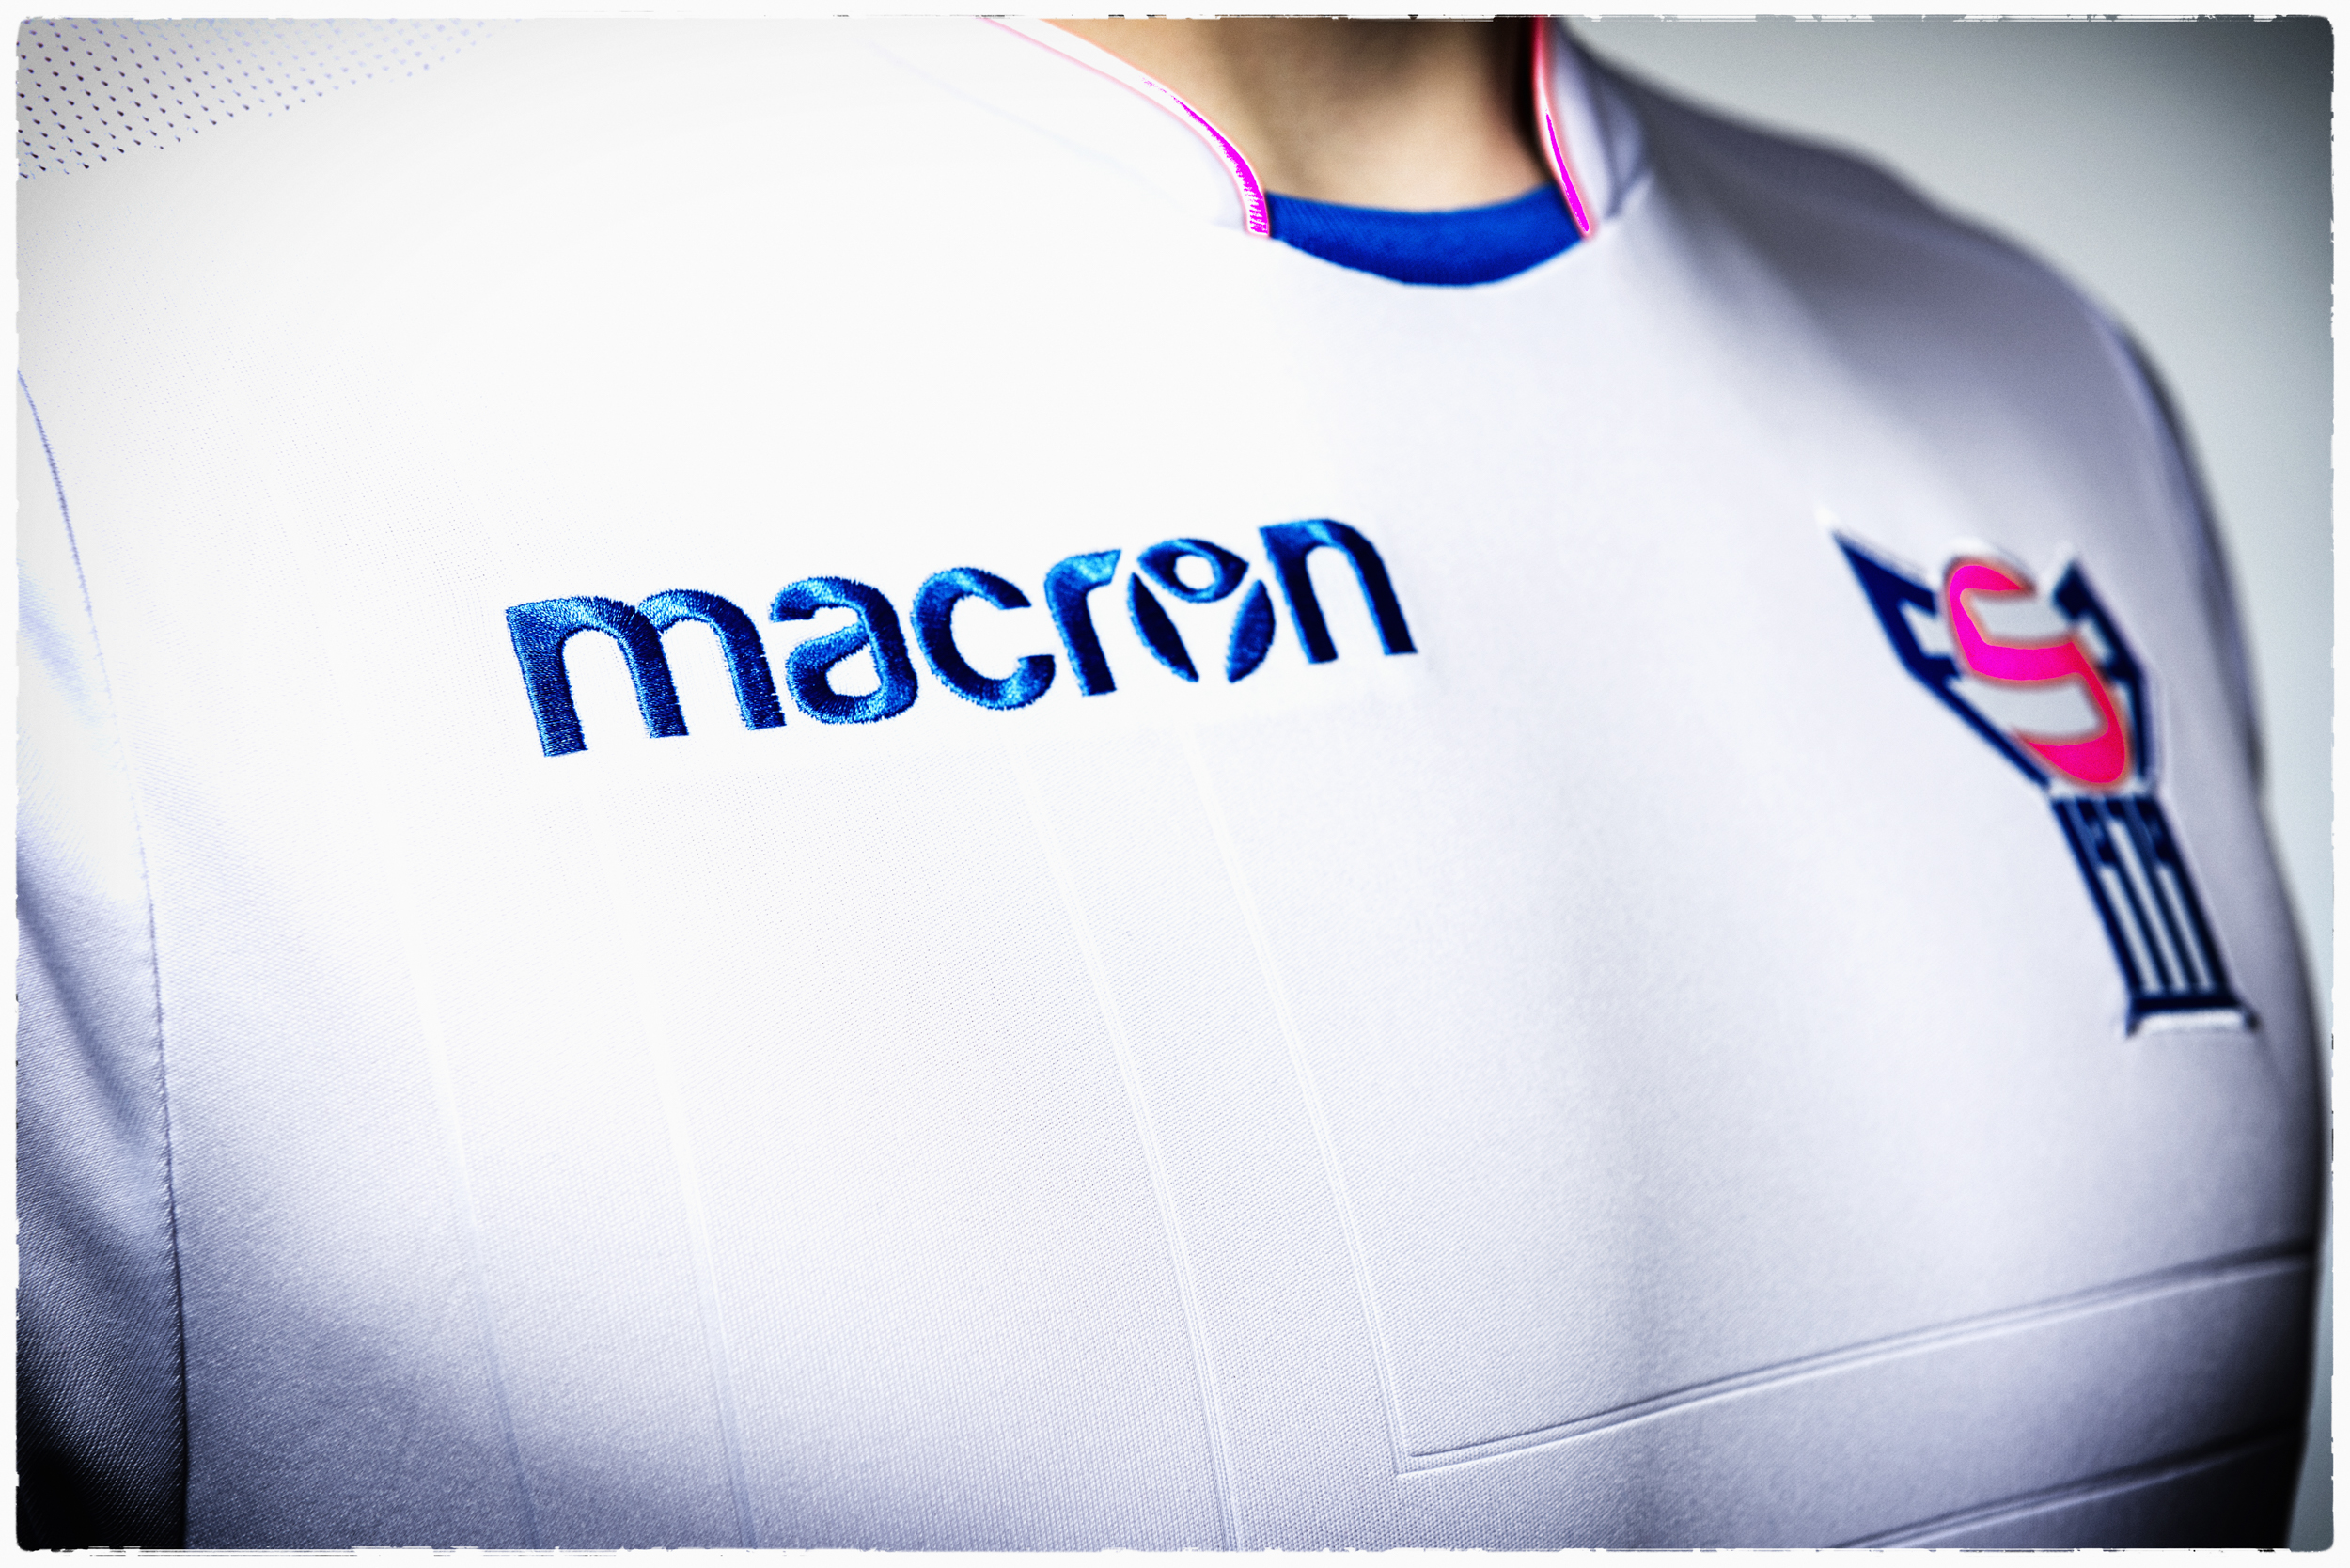 Macron football clothing.